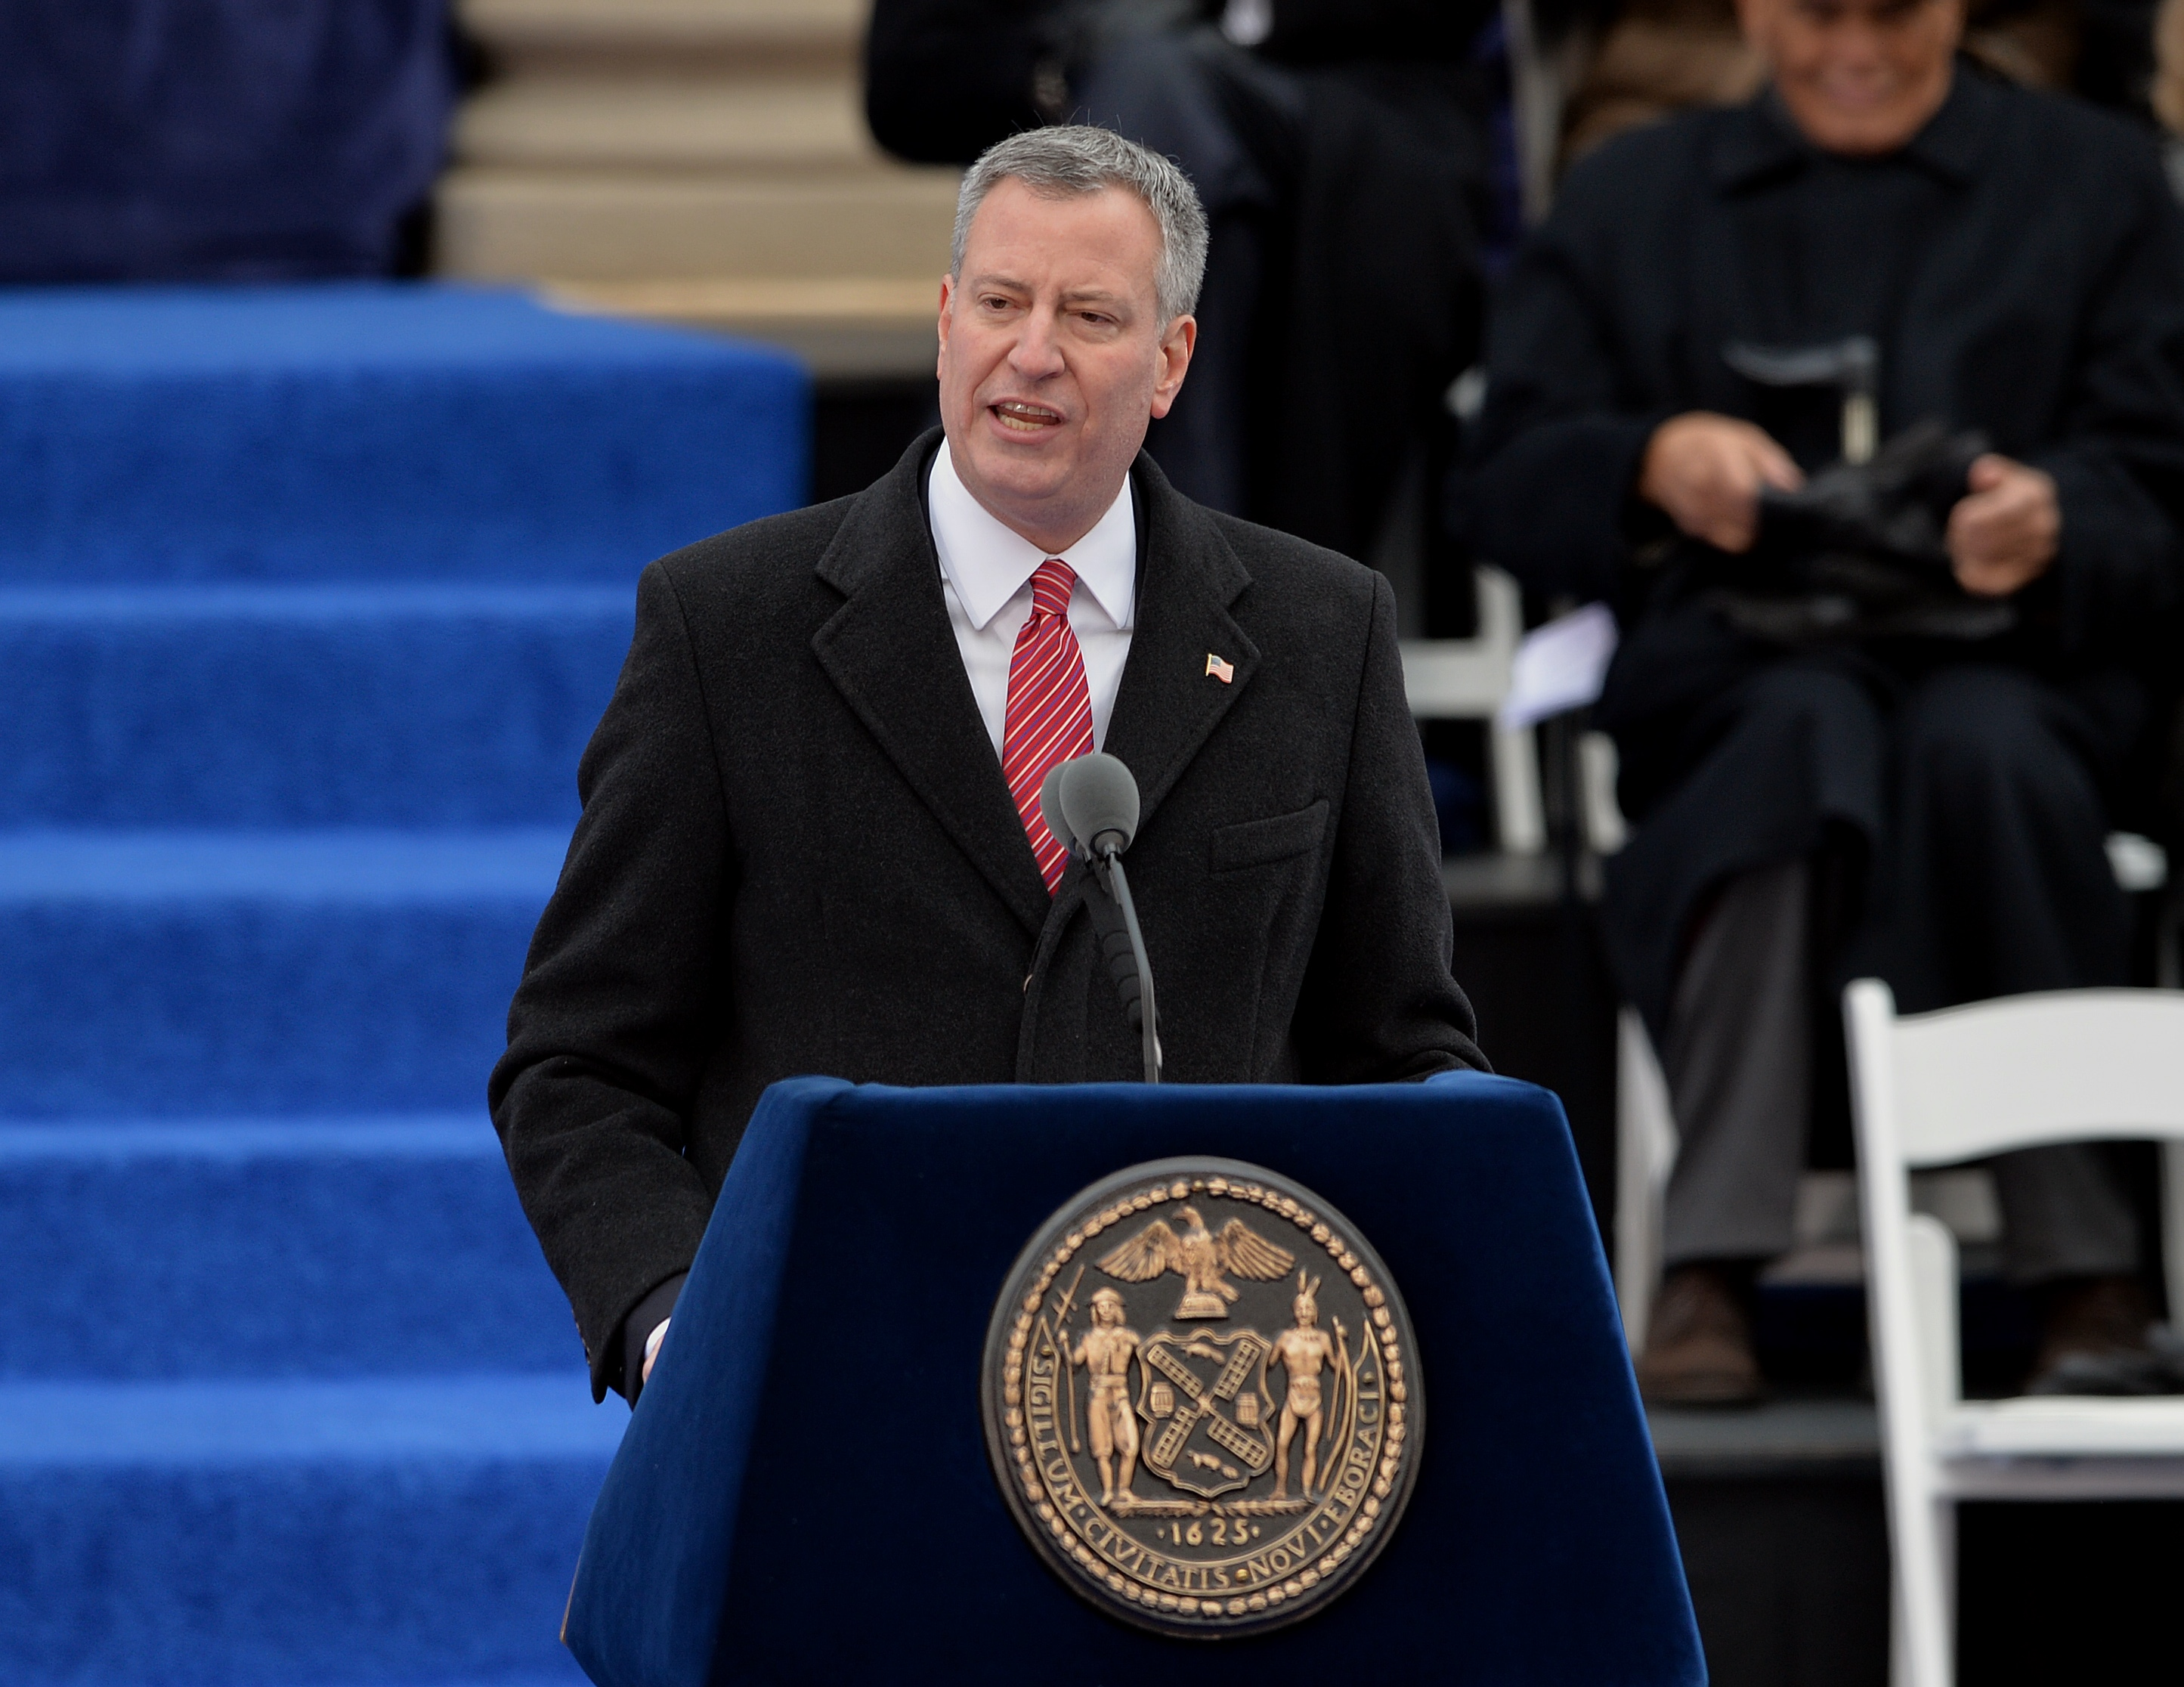 New York City Mayor Bill de Blasio speaks after being sworn in on the steps of City Hall in Lower Manhattan January 1, 2014 in New York.